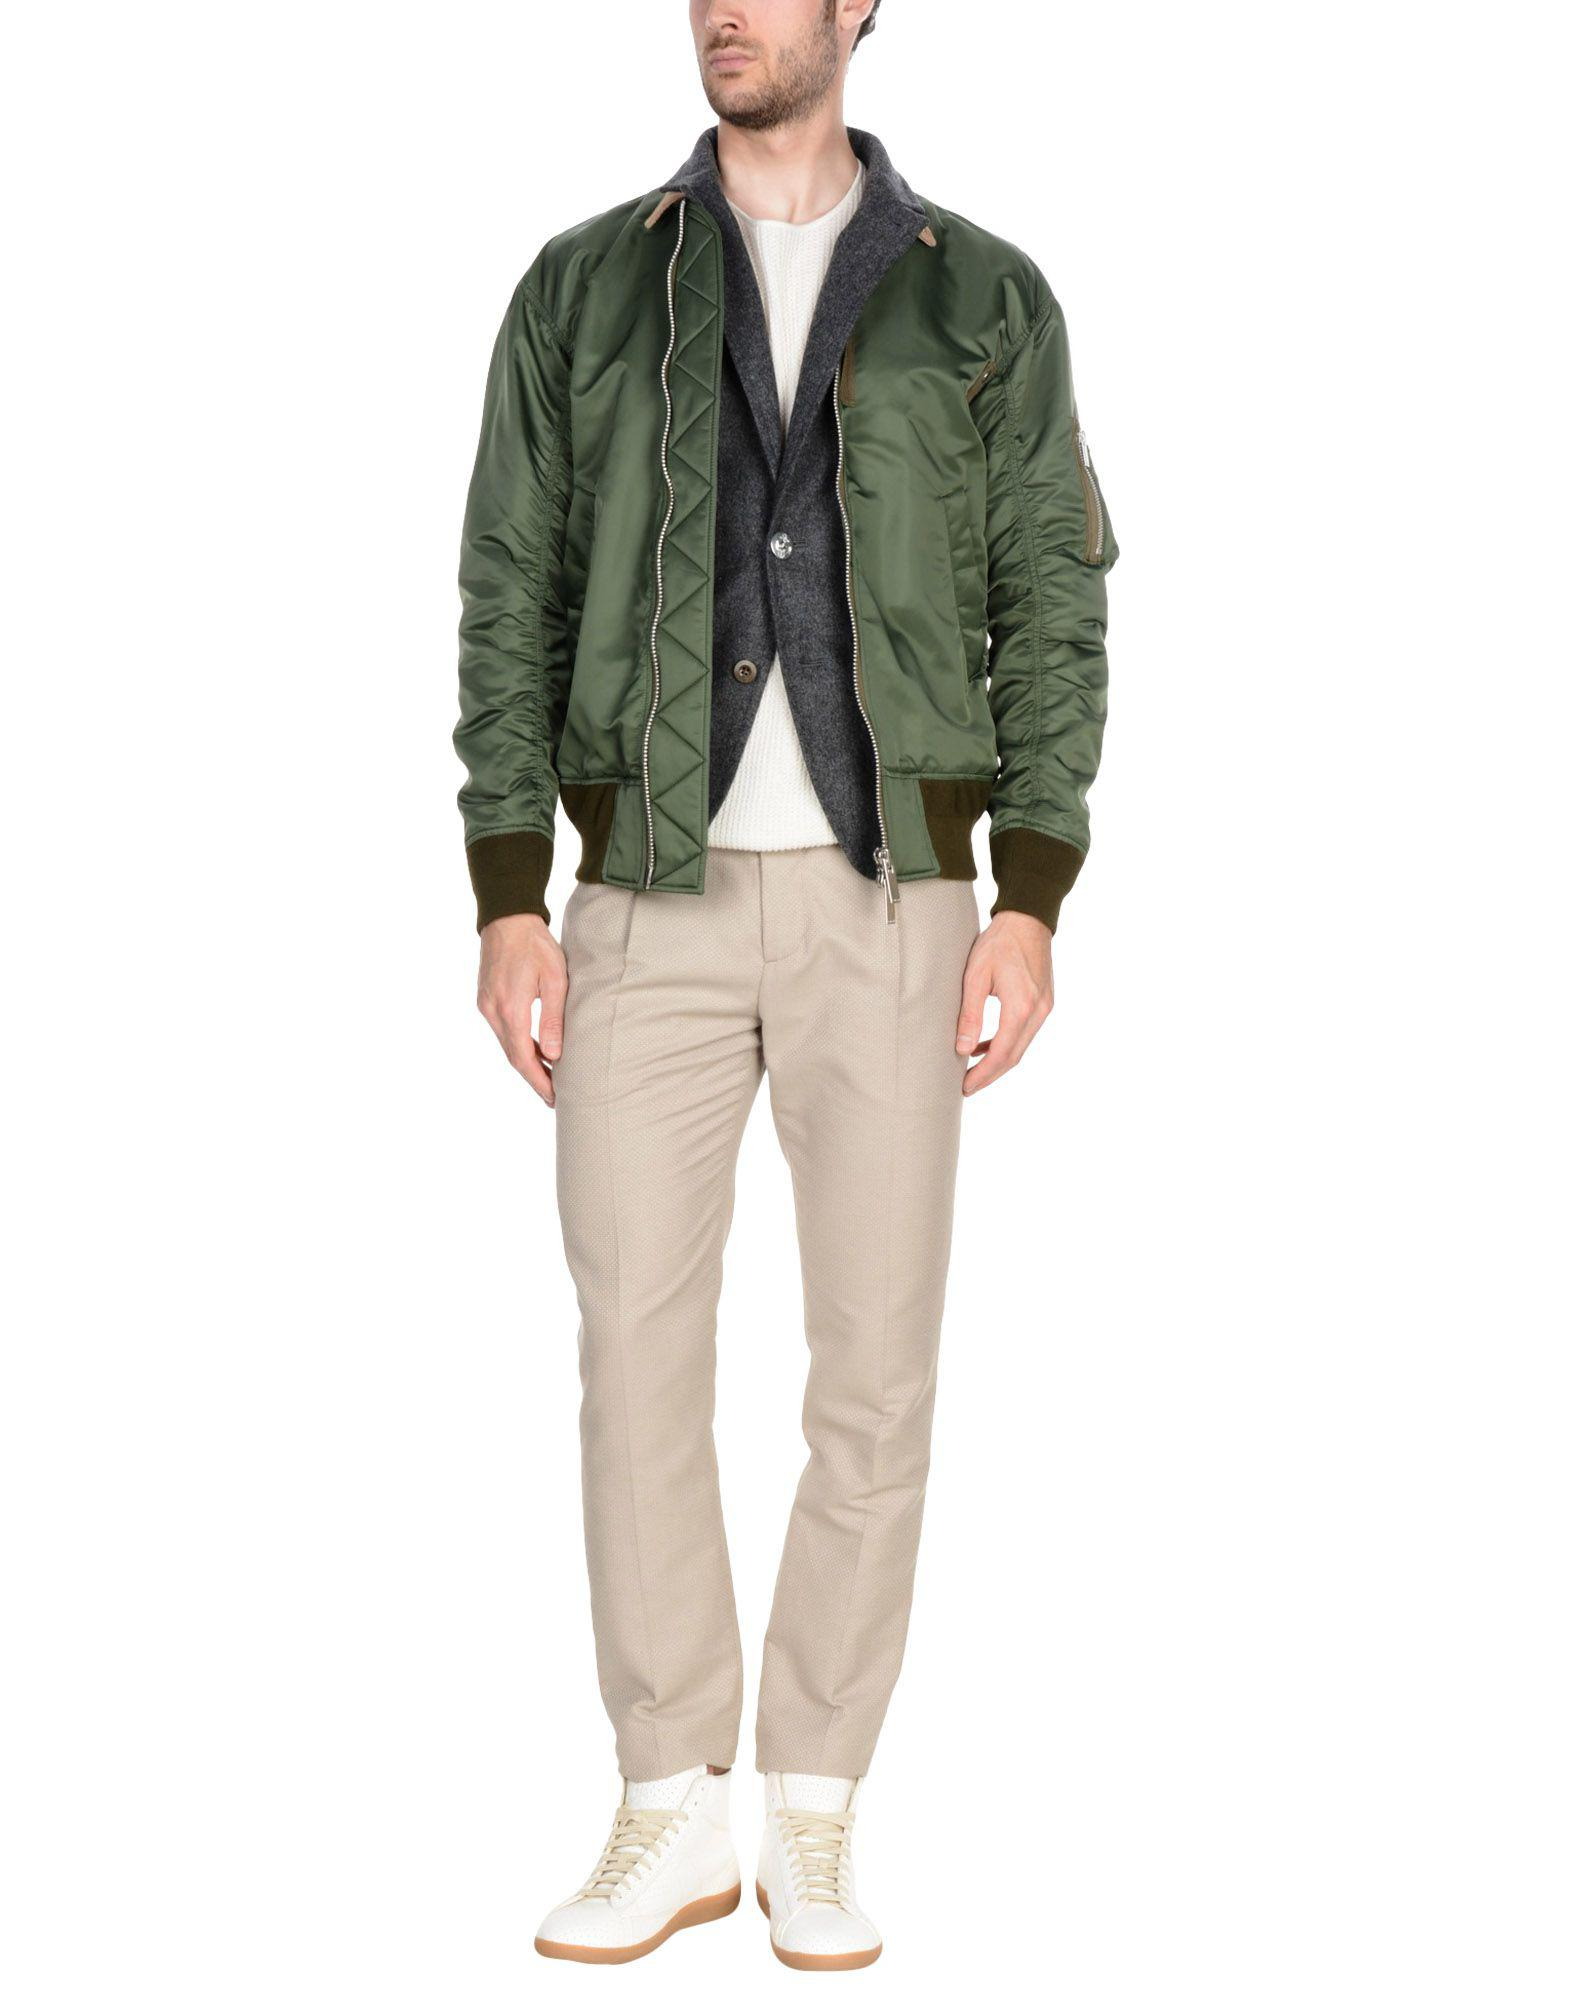 Sacai Leather Jacket in Military Green (Green) for Men